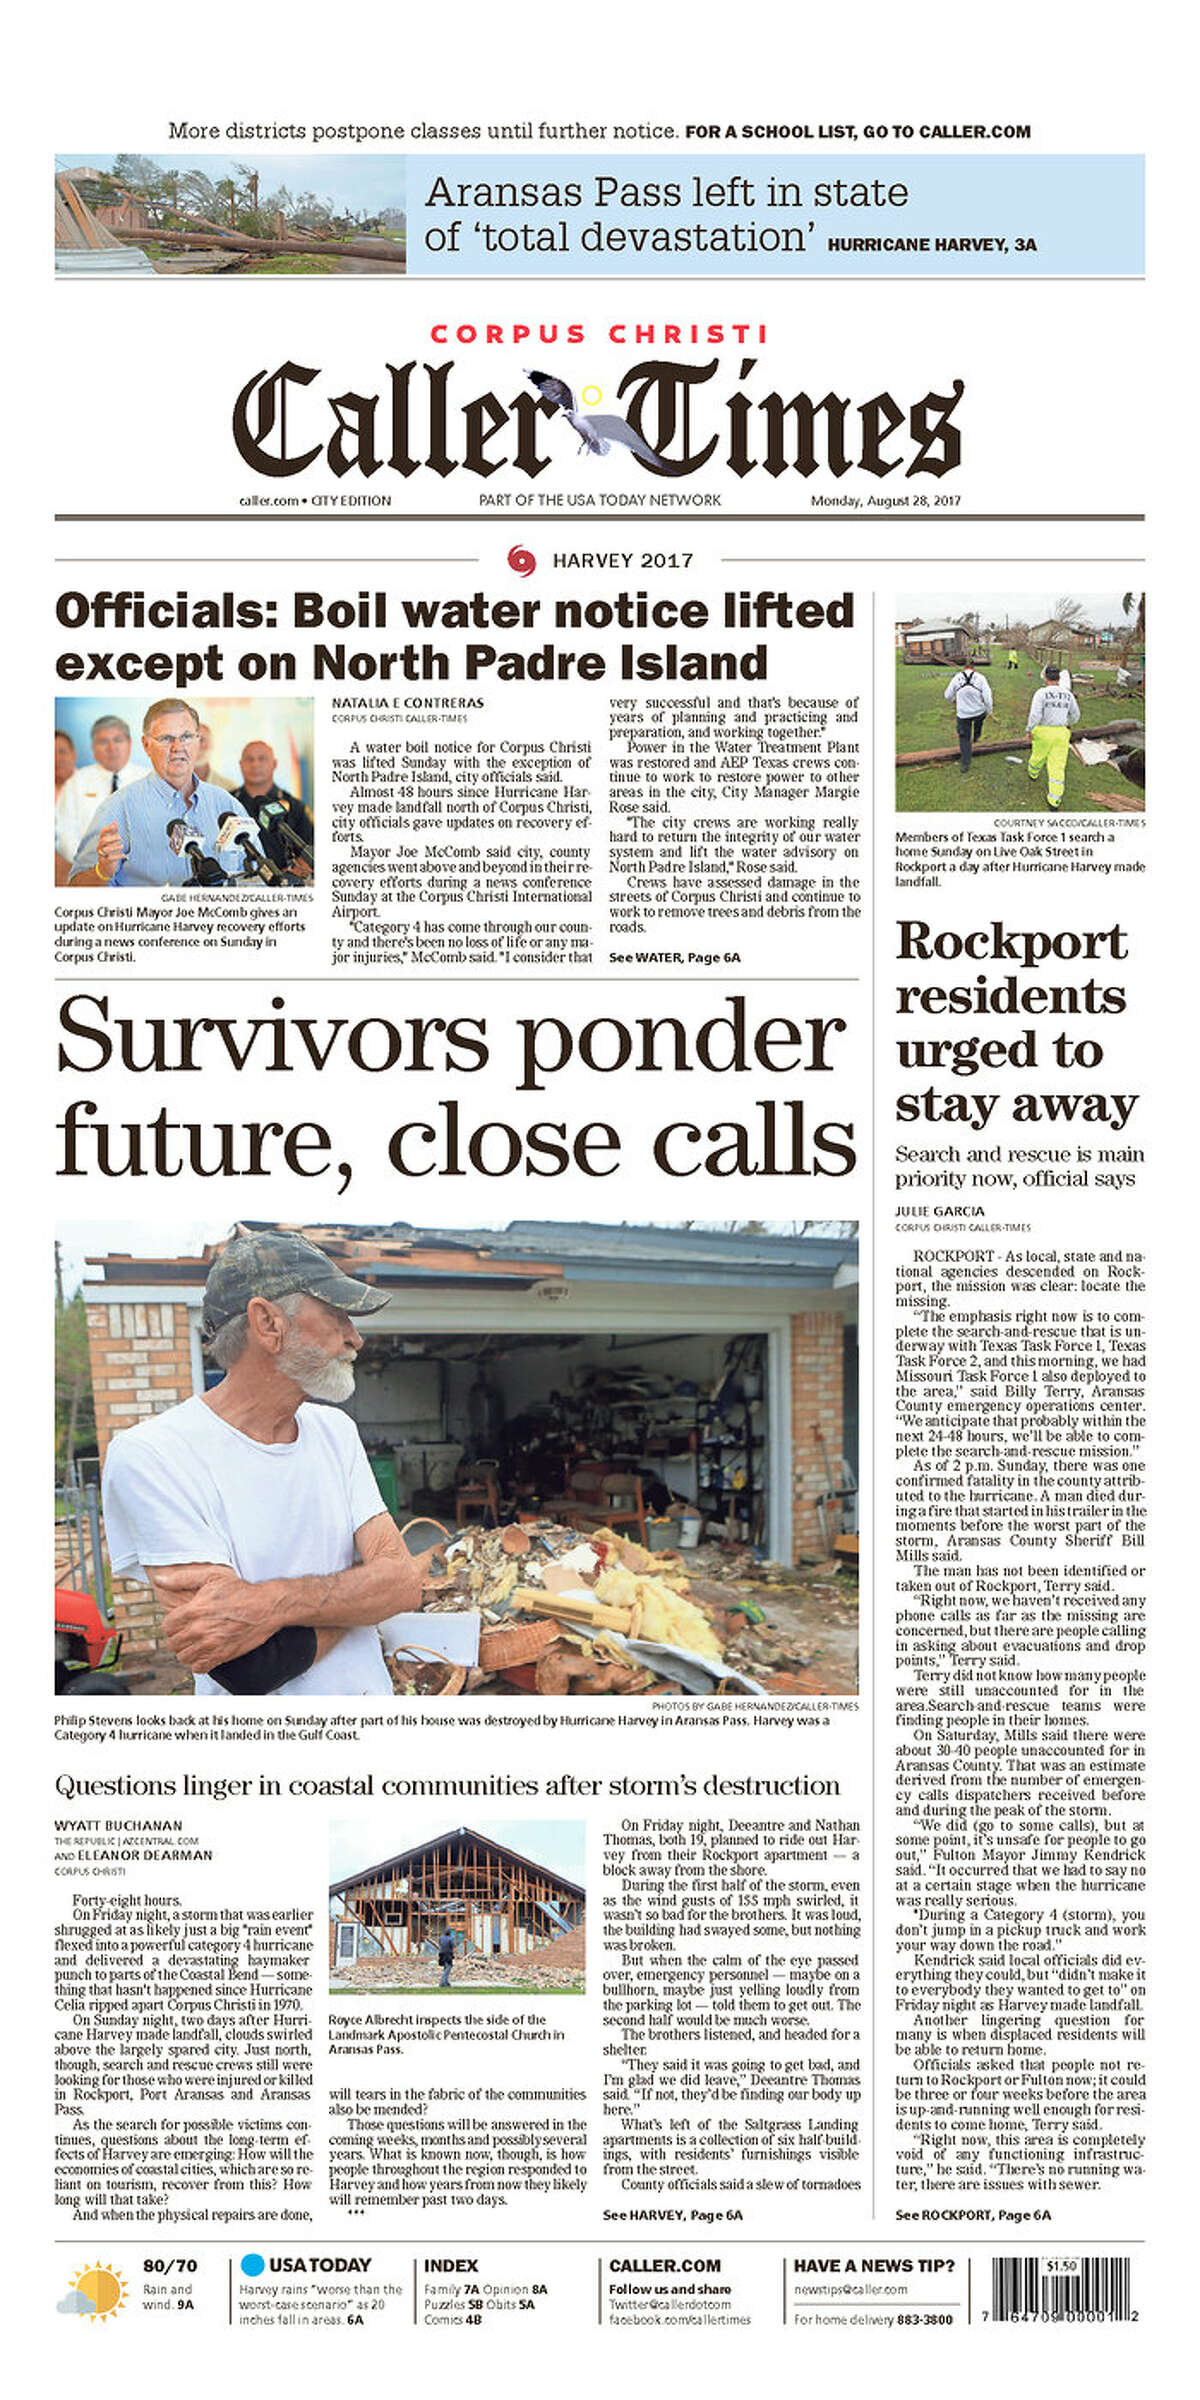 Corpus Christi Caller-Times: Corpus Christi, Texas Front pages from Texas and beyond for Monday, Aug. 28, 2017, show how newspapers covered the catastrophic floods in Houston due to Tropical Storm Harvey.